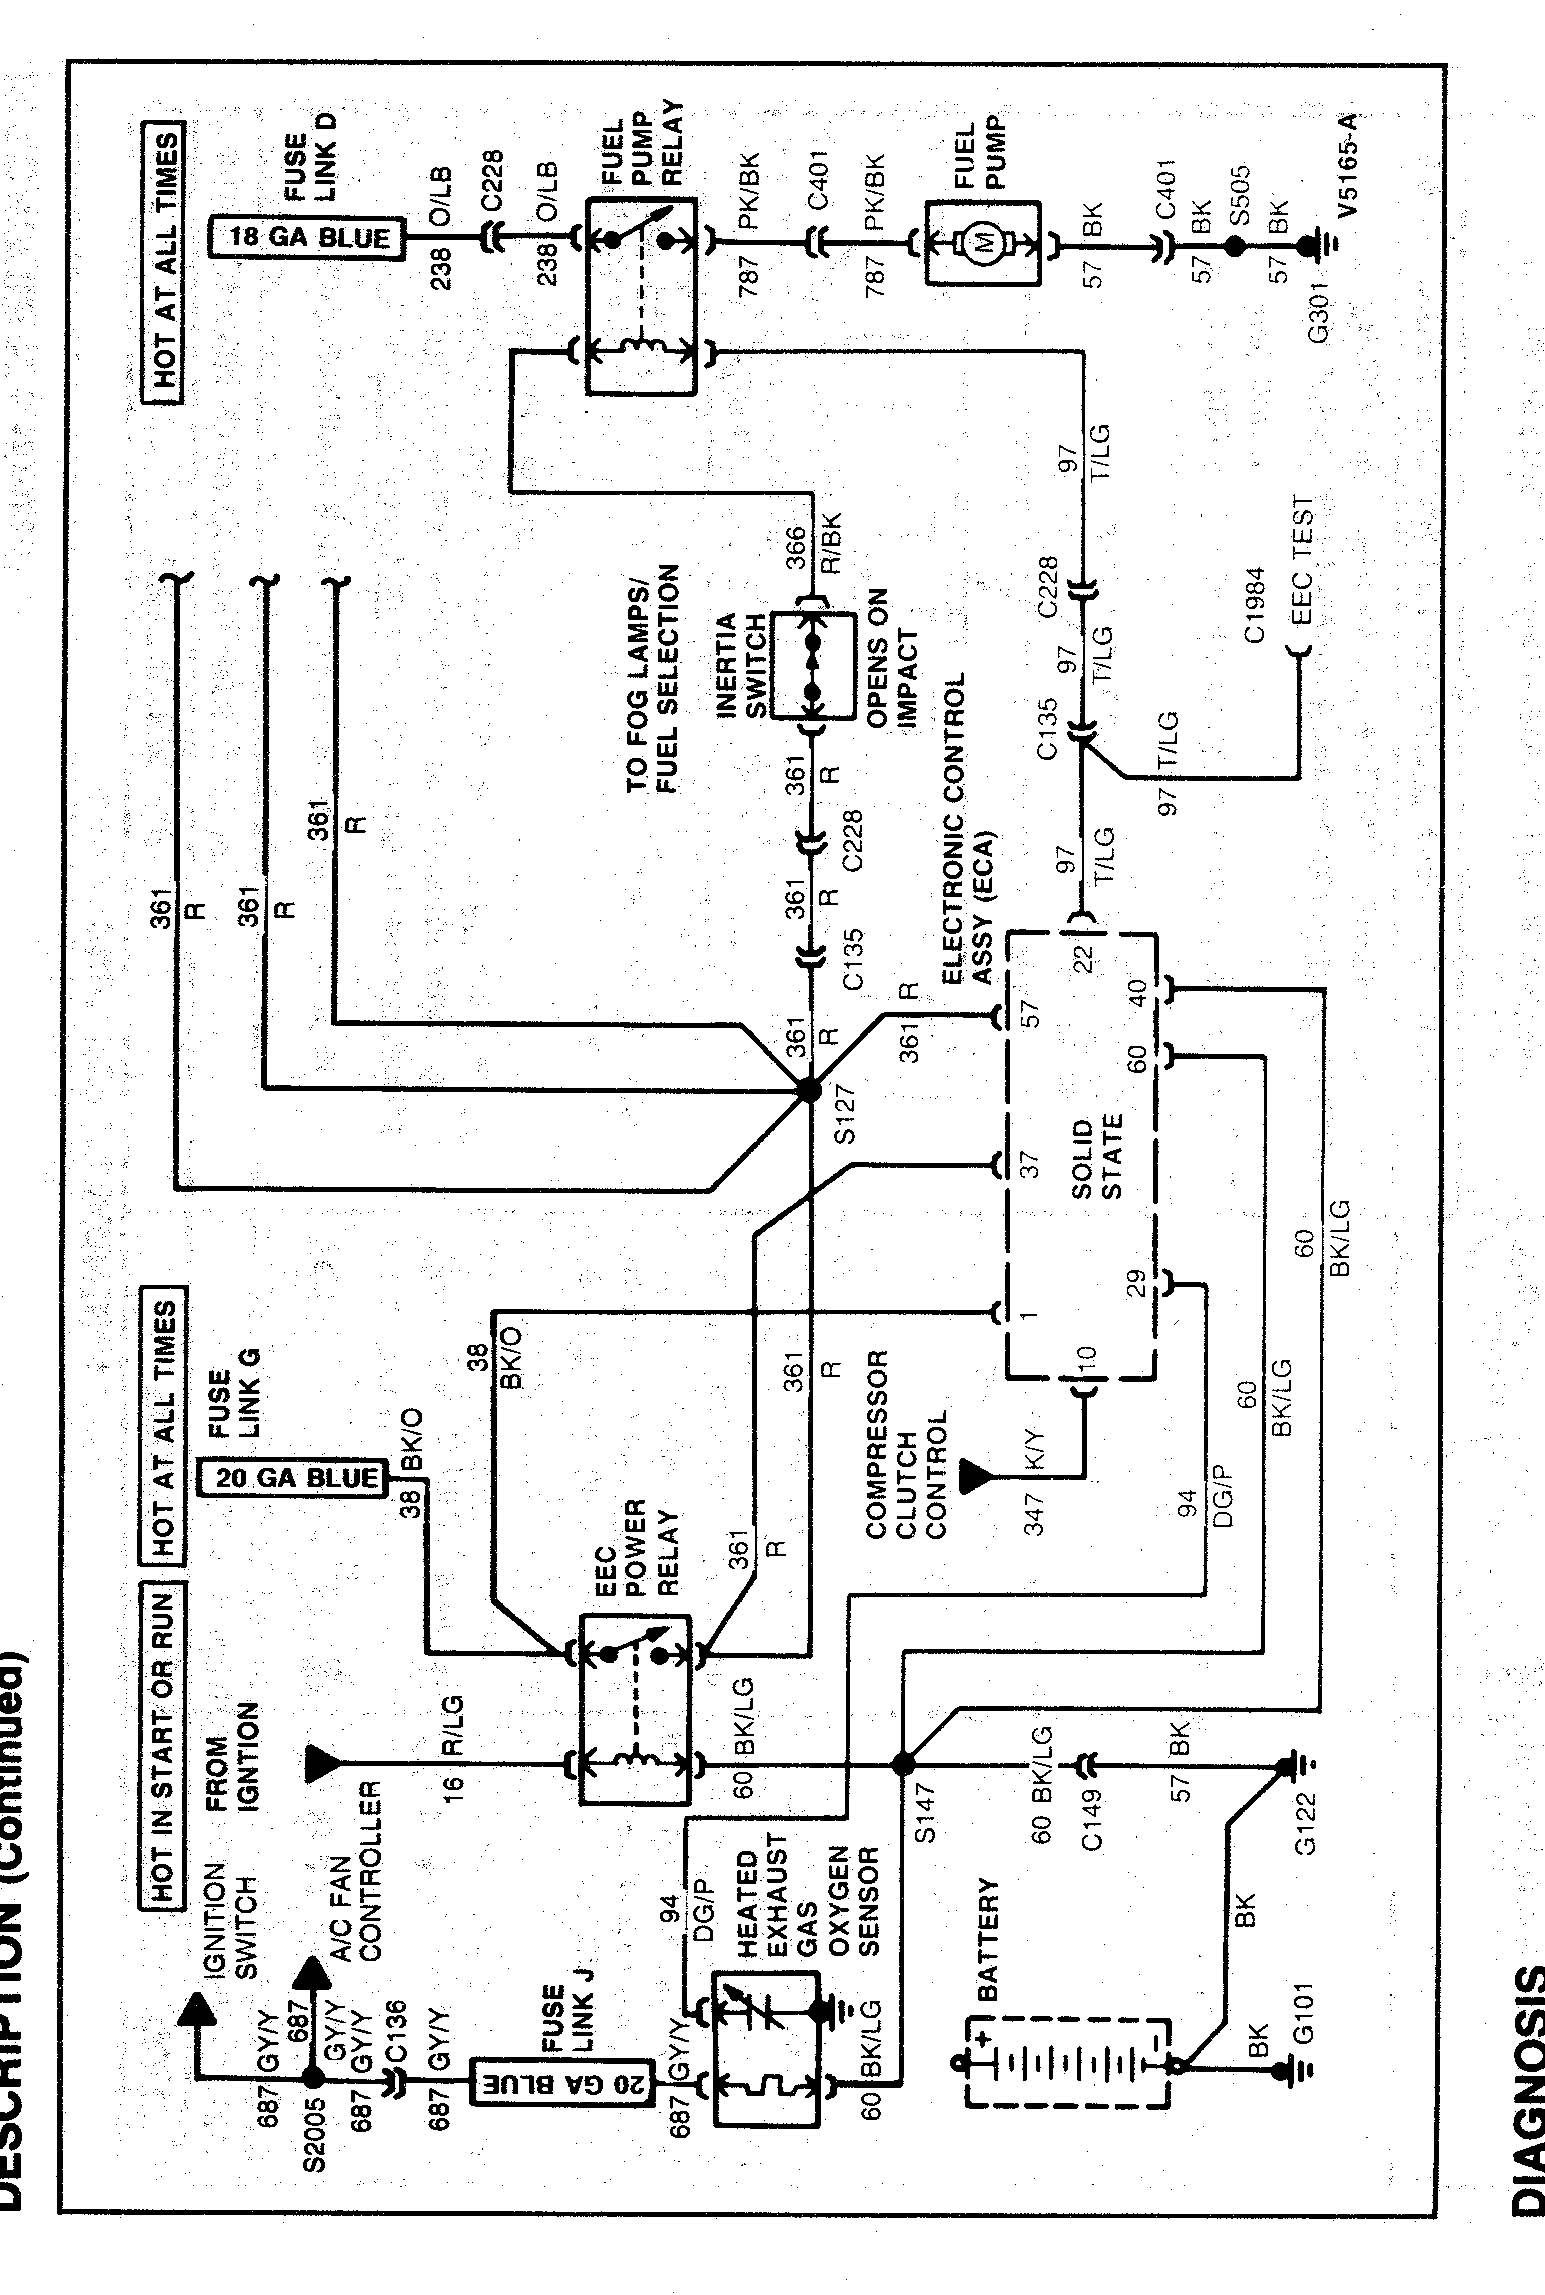 fuel pump wiring diagram for mustang fuel pump wiring ford fuel pump wiring diagram nilza net